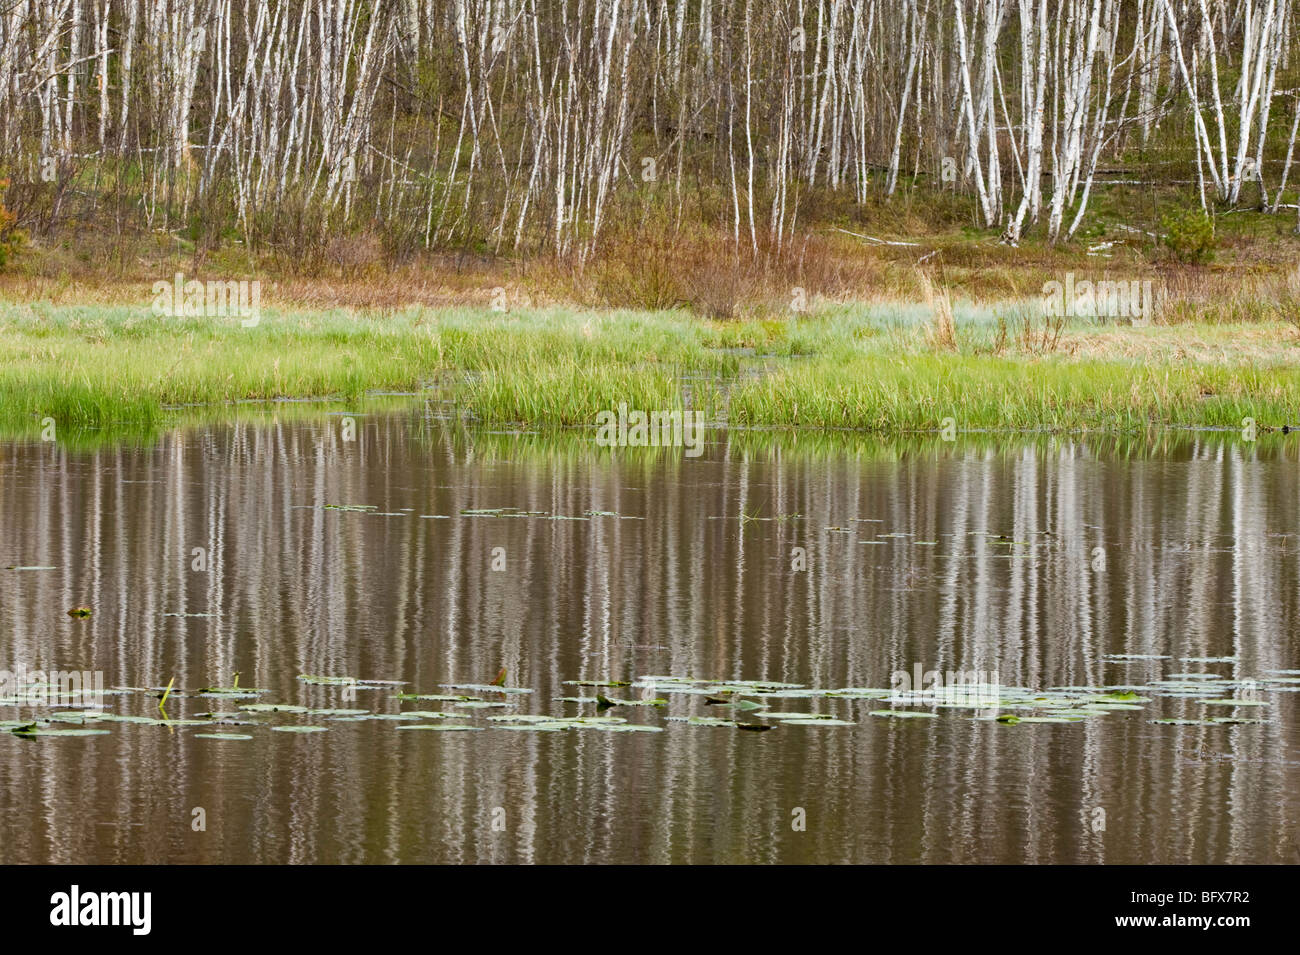 Birch tree reflections in beaverpond with water lily pads, Greater Sudbury, Ontario, Canada - Stock Image